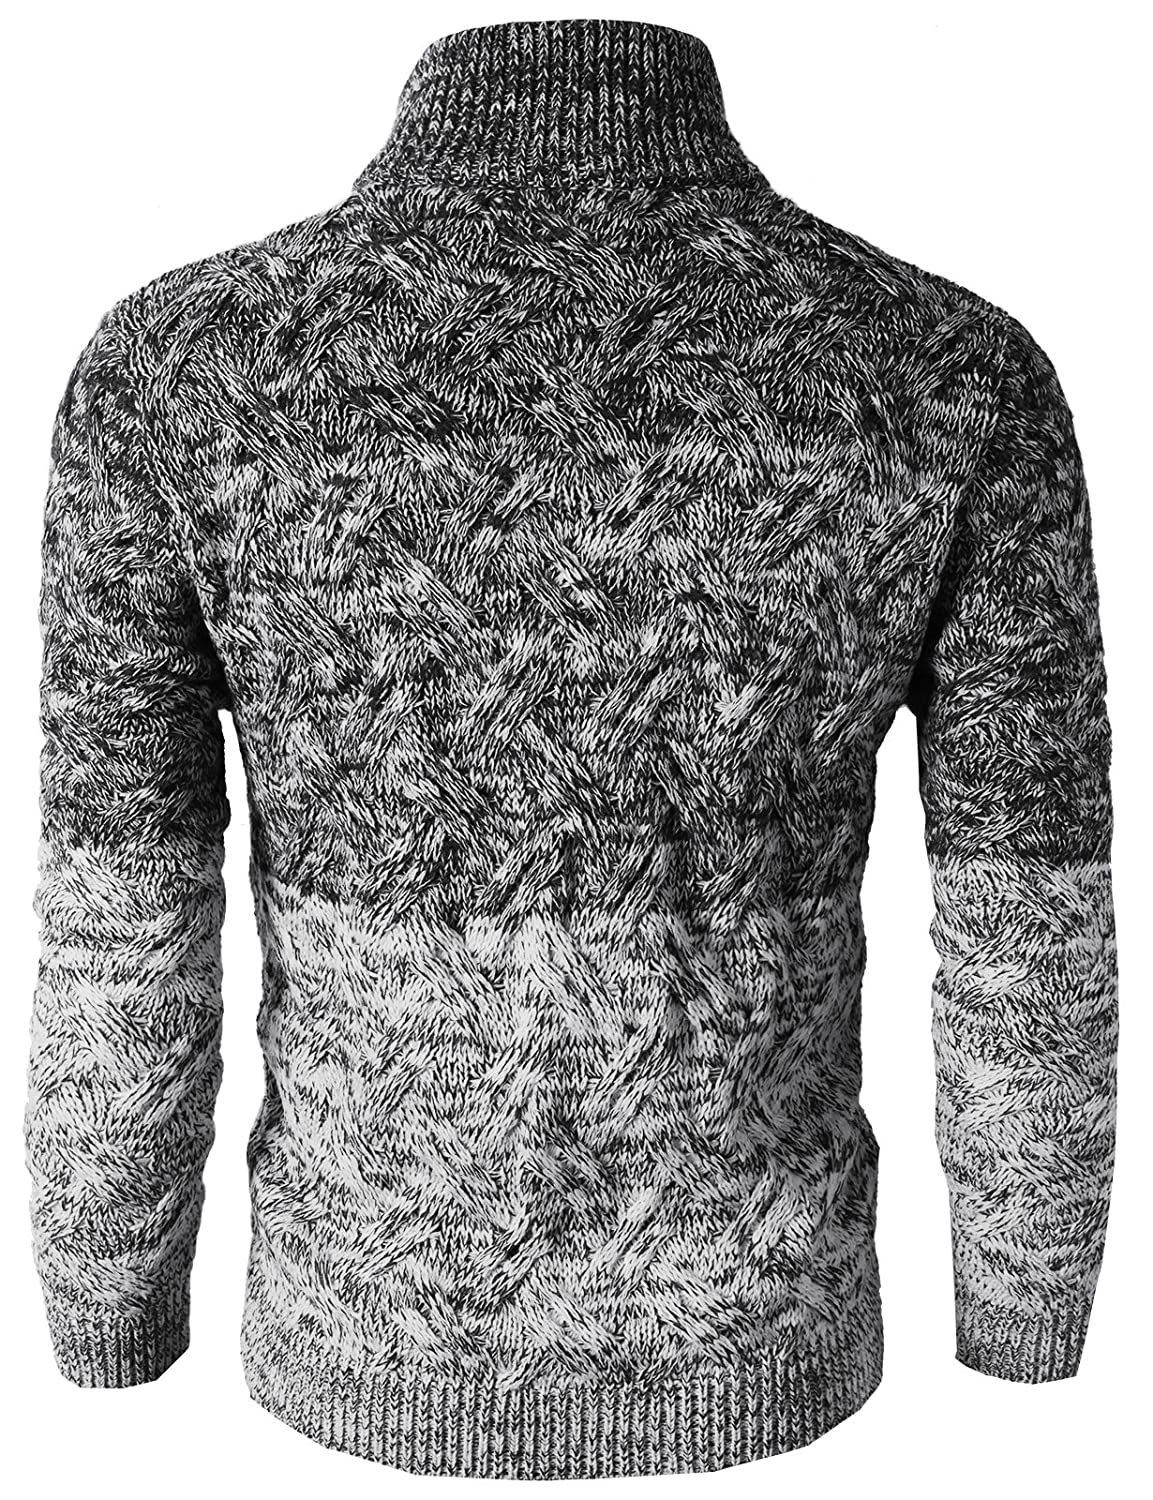 H2H Mens Casual Slim Fit Knitted Cardigan Zip-up Long Sleeve Thermal with Twisted Pattern